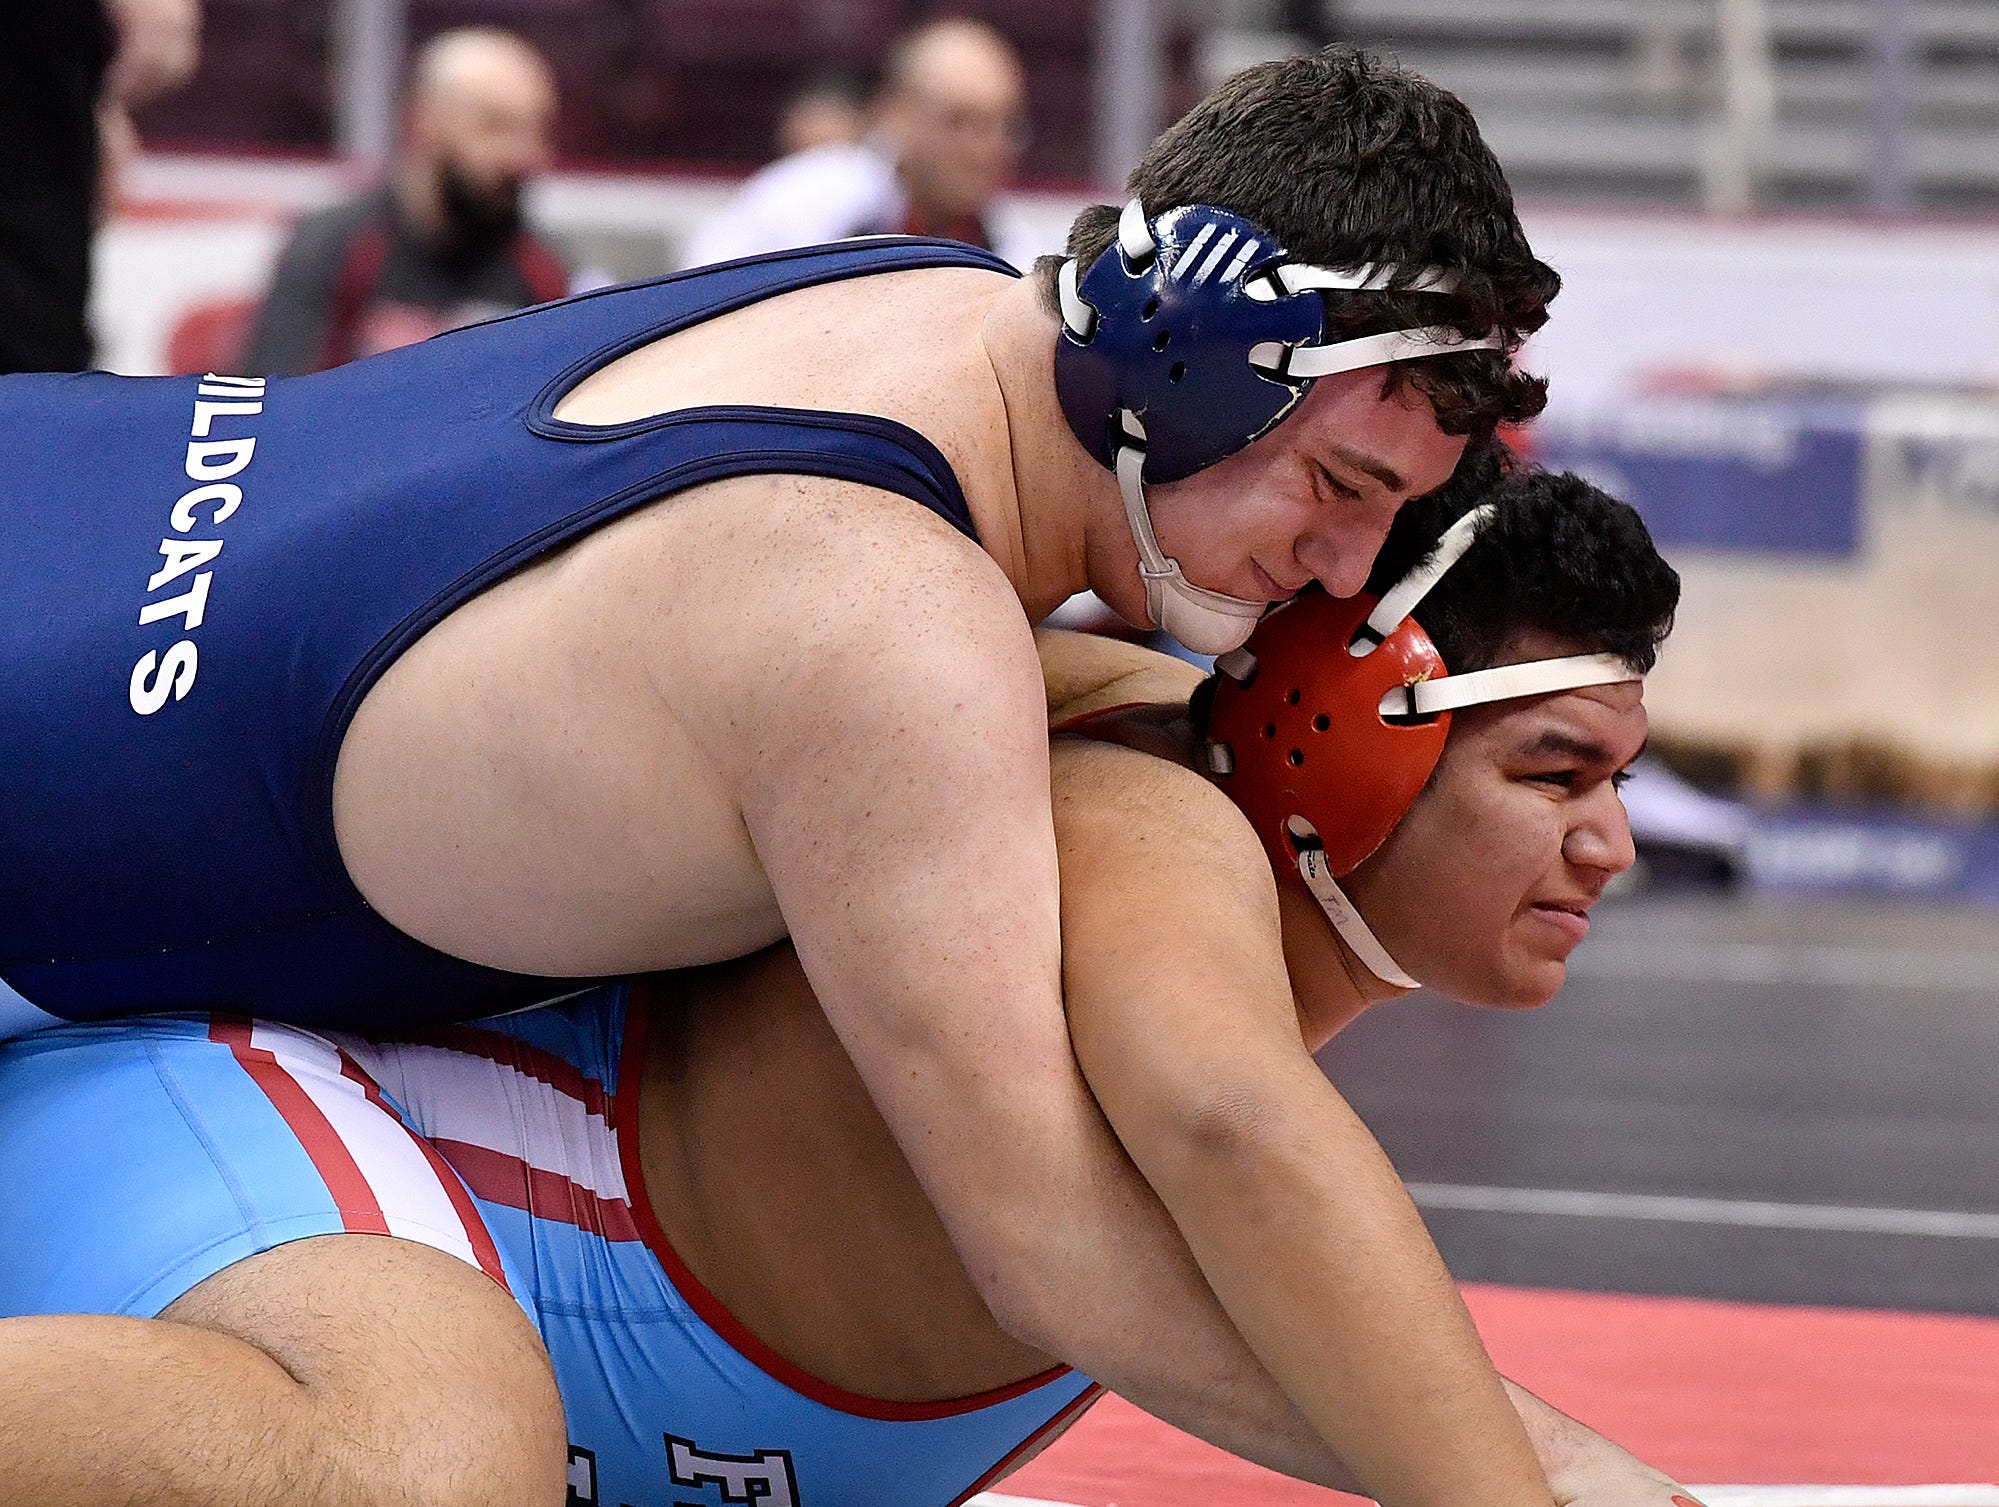 Dallastown's Raymond Christas gets the take-down on Jose Lake of Father Judge during the 285 pound match of PIAA Team Wrestling at Hershey's Giant Center, Thursday, February 7, 2019.